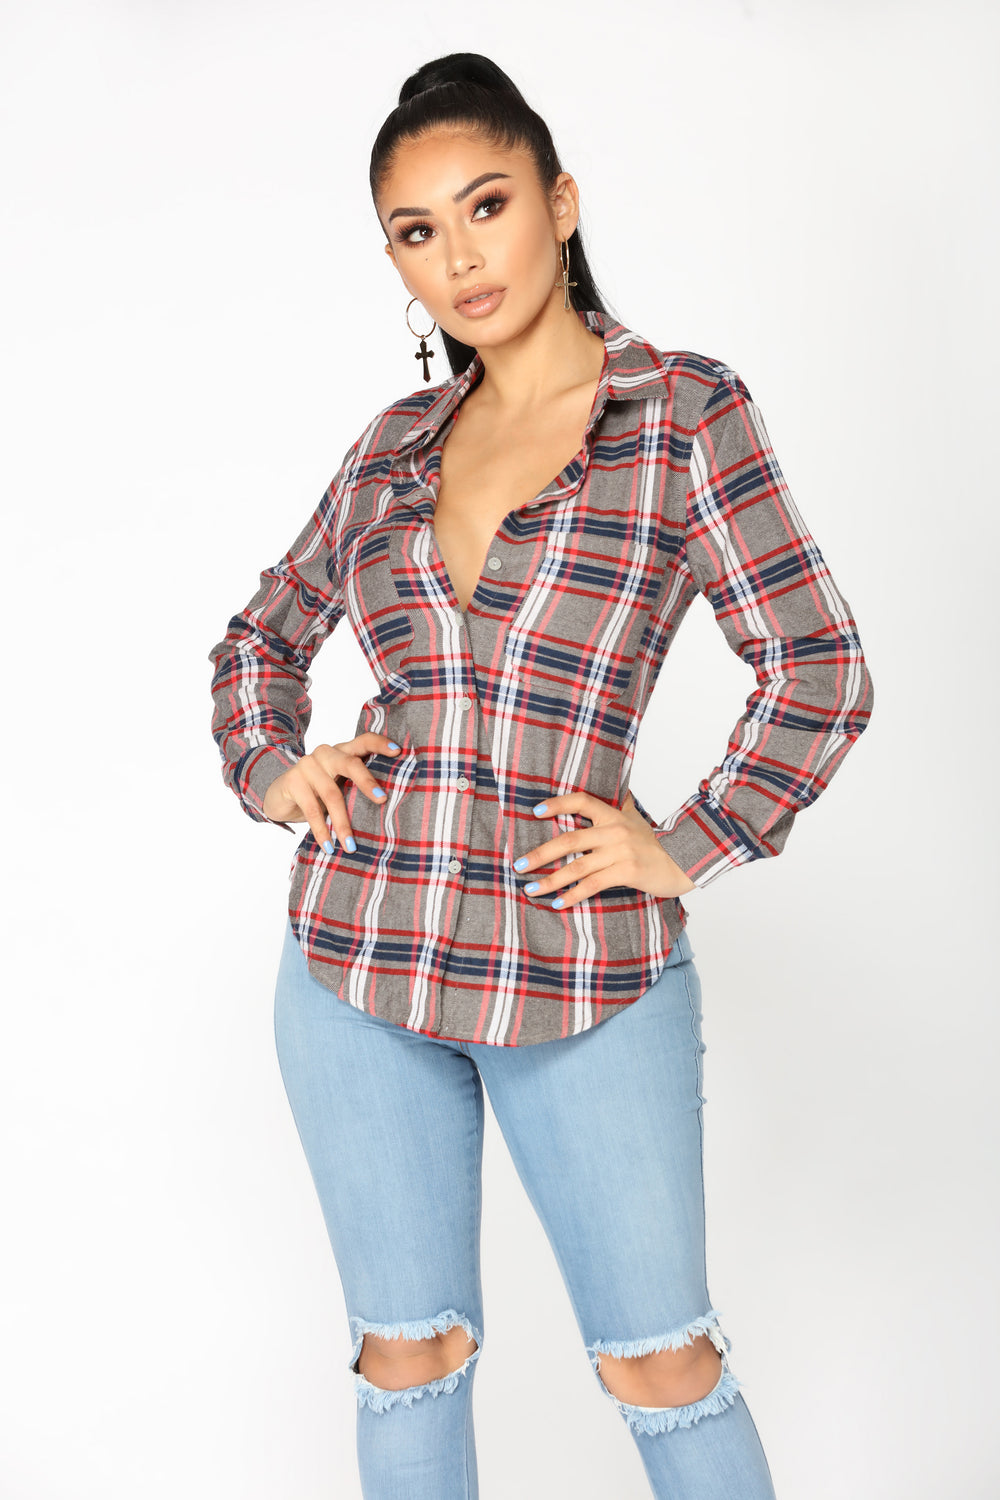 All Season Plaid Top - Grey/Multi